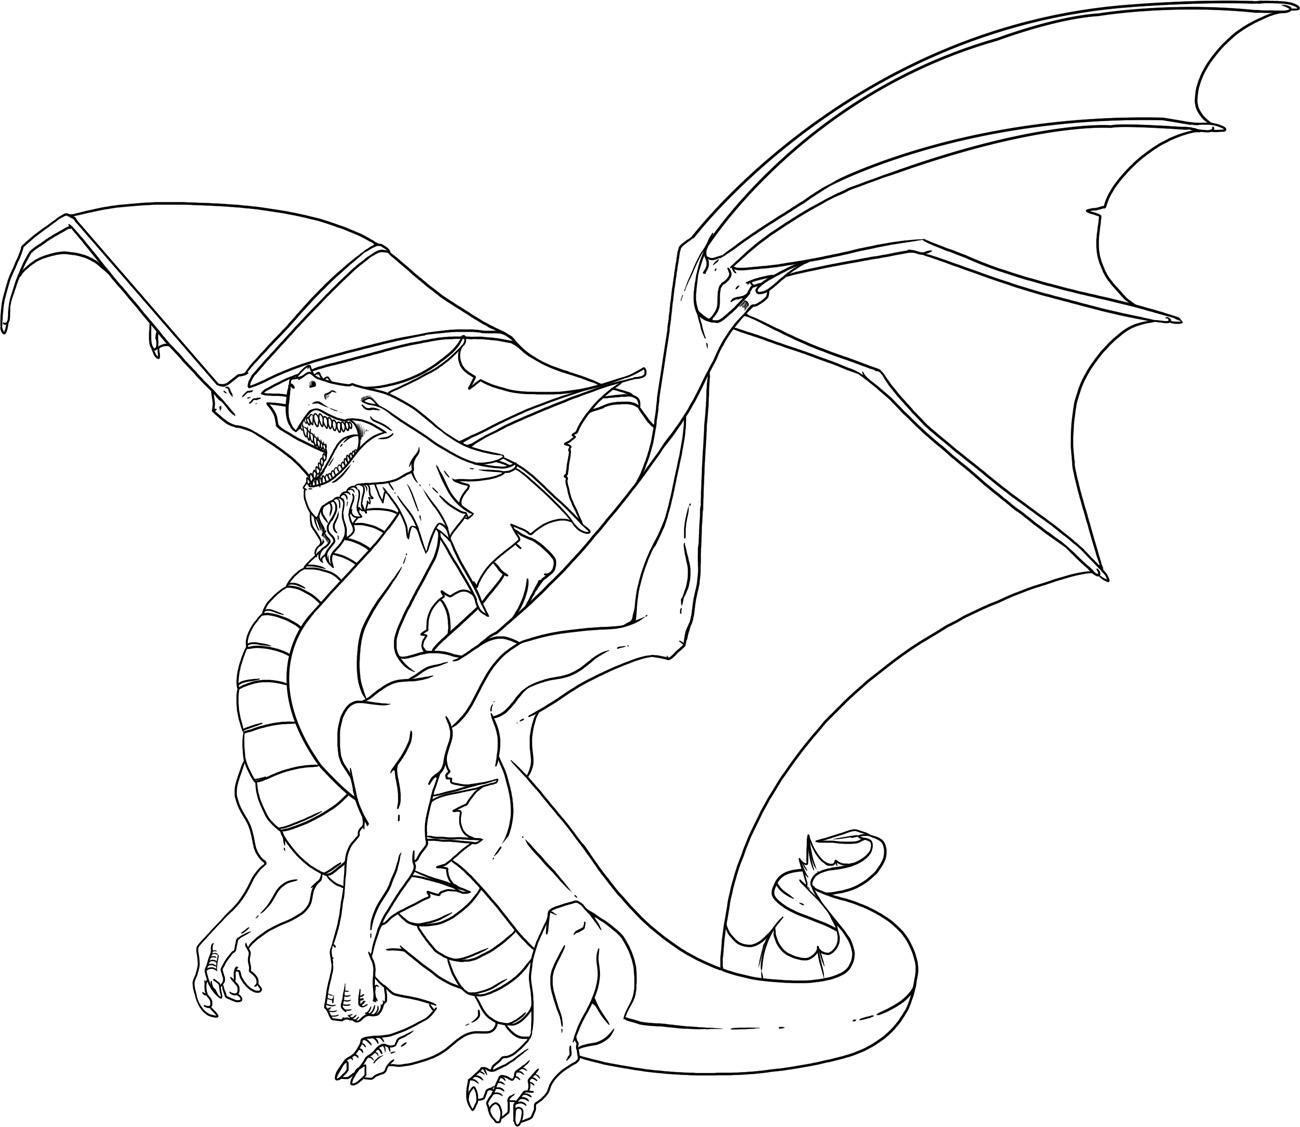 Printable Dragon Coloring Pages Free Printable Dragon Coloring Pages For Kids